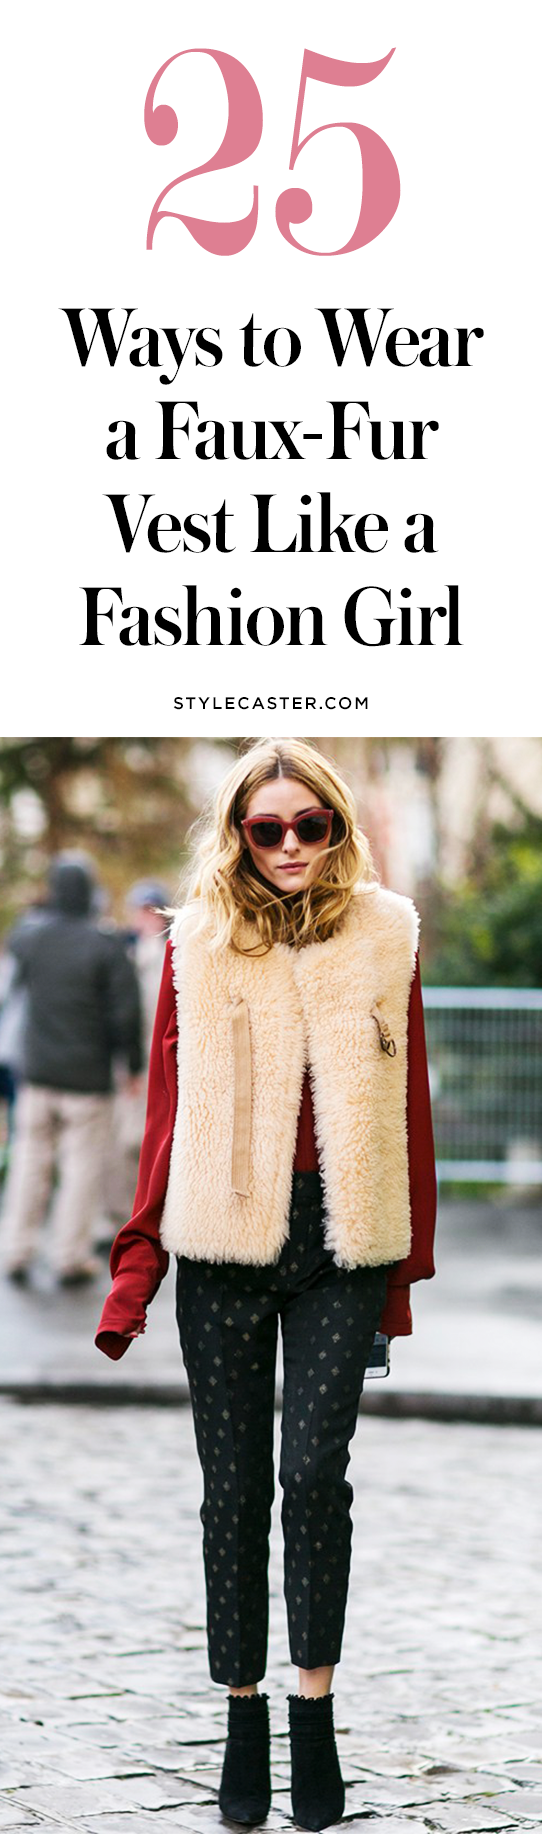 25 faux-fur vest outfits to copy now | @stylecaster